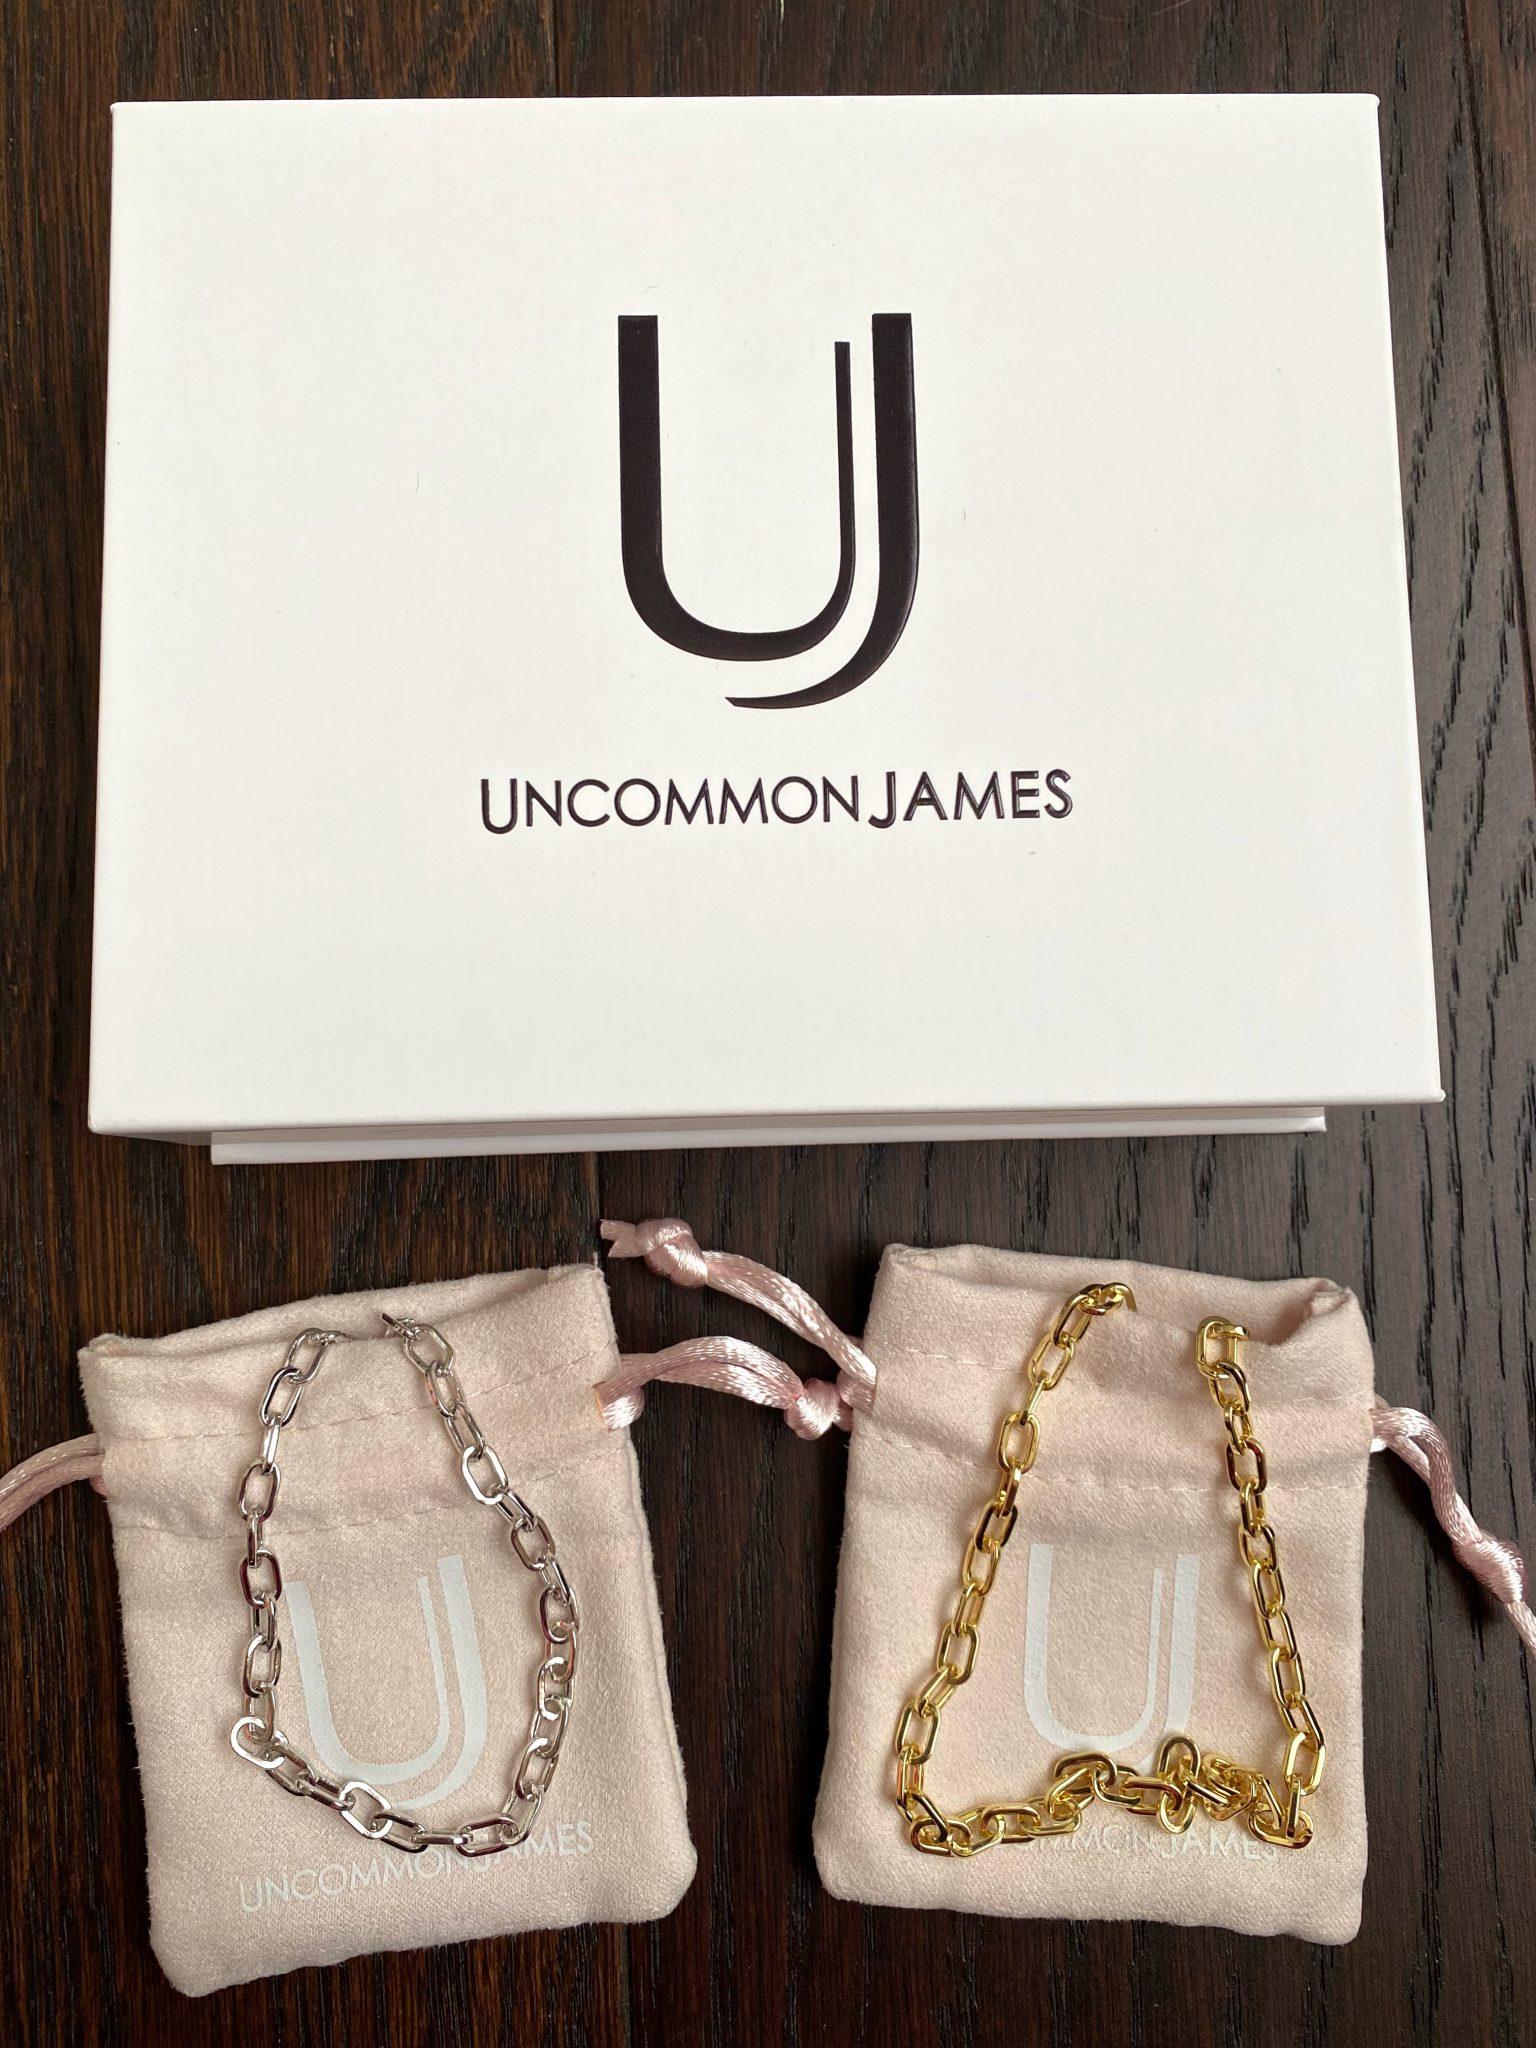 Uncommon James Monthly Mystery Items Review – January 2021